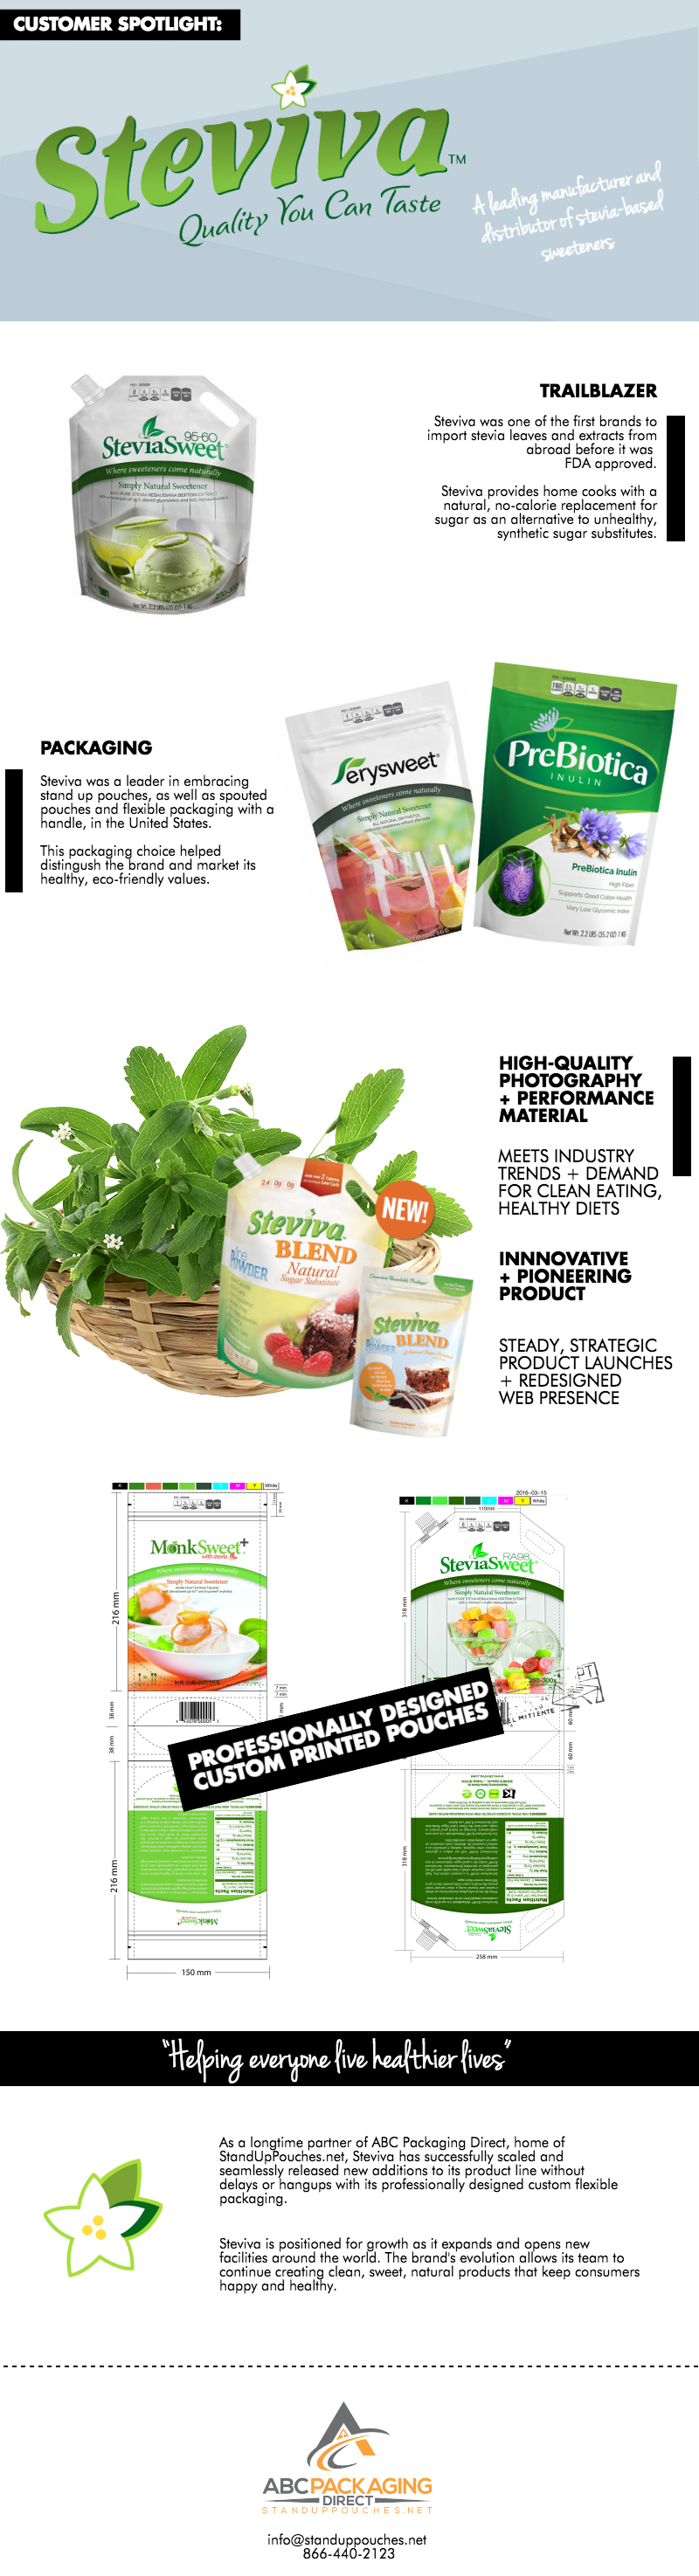 Steviva Brands Custom Printed Pouches Infographic